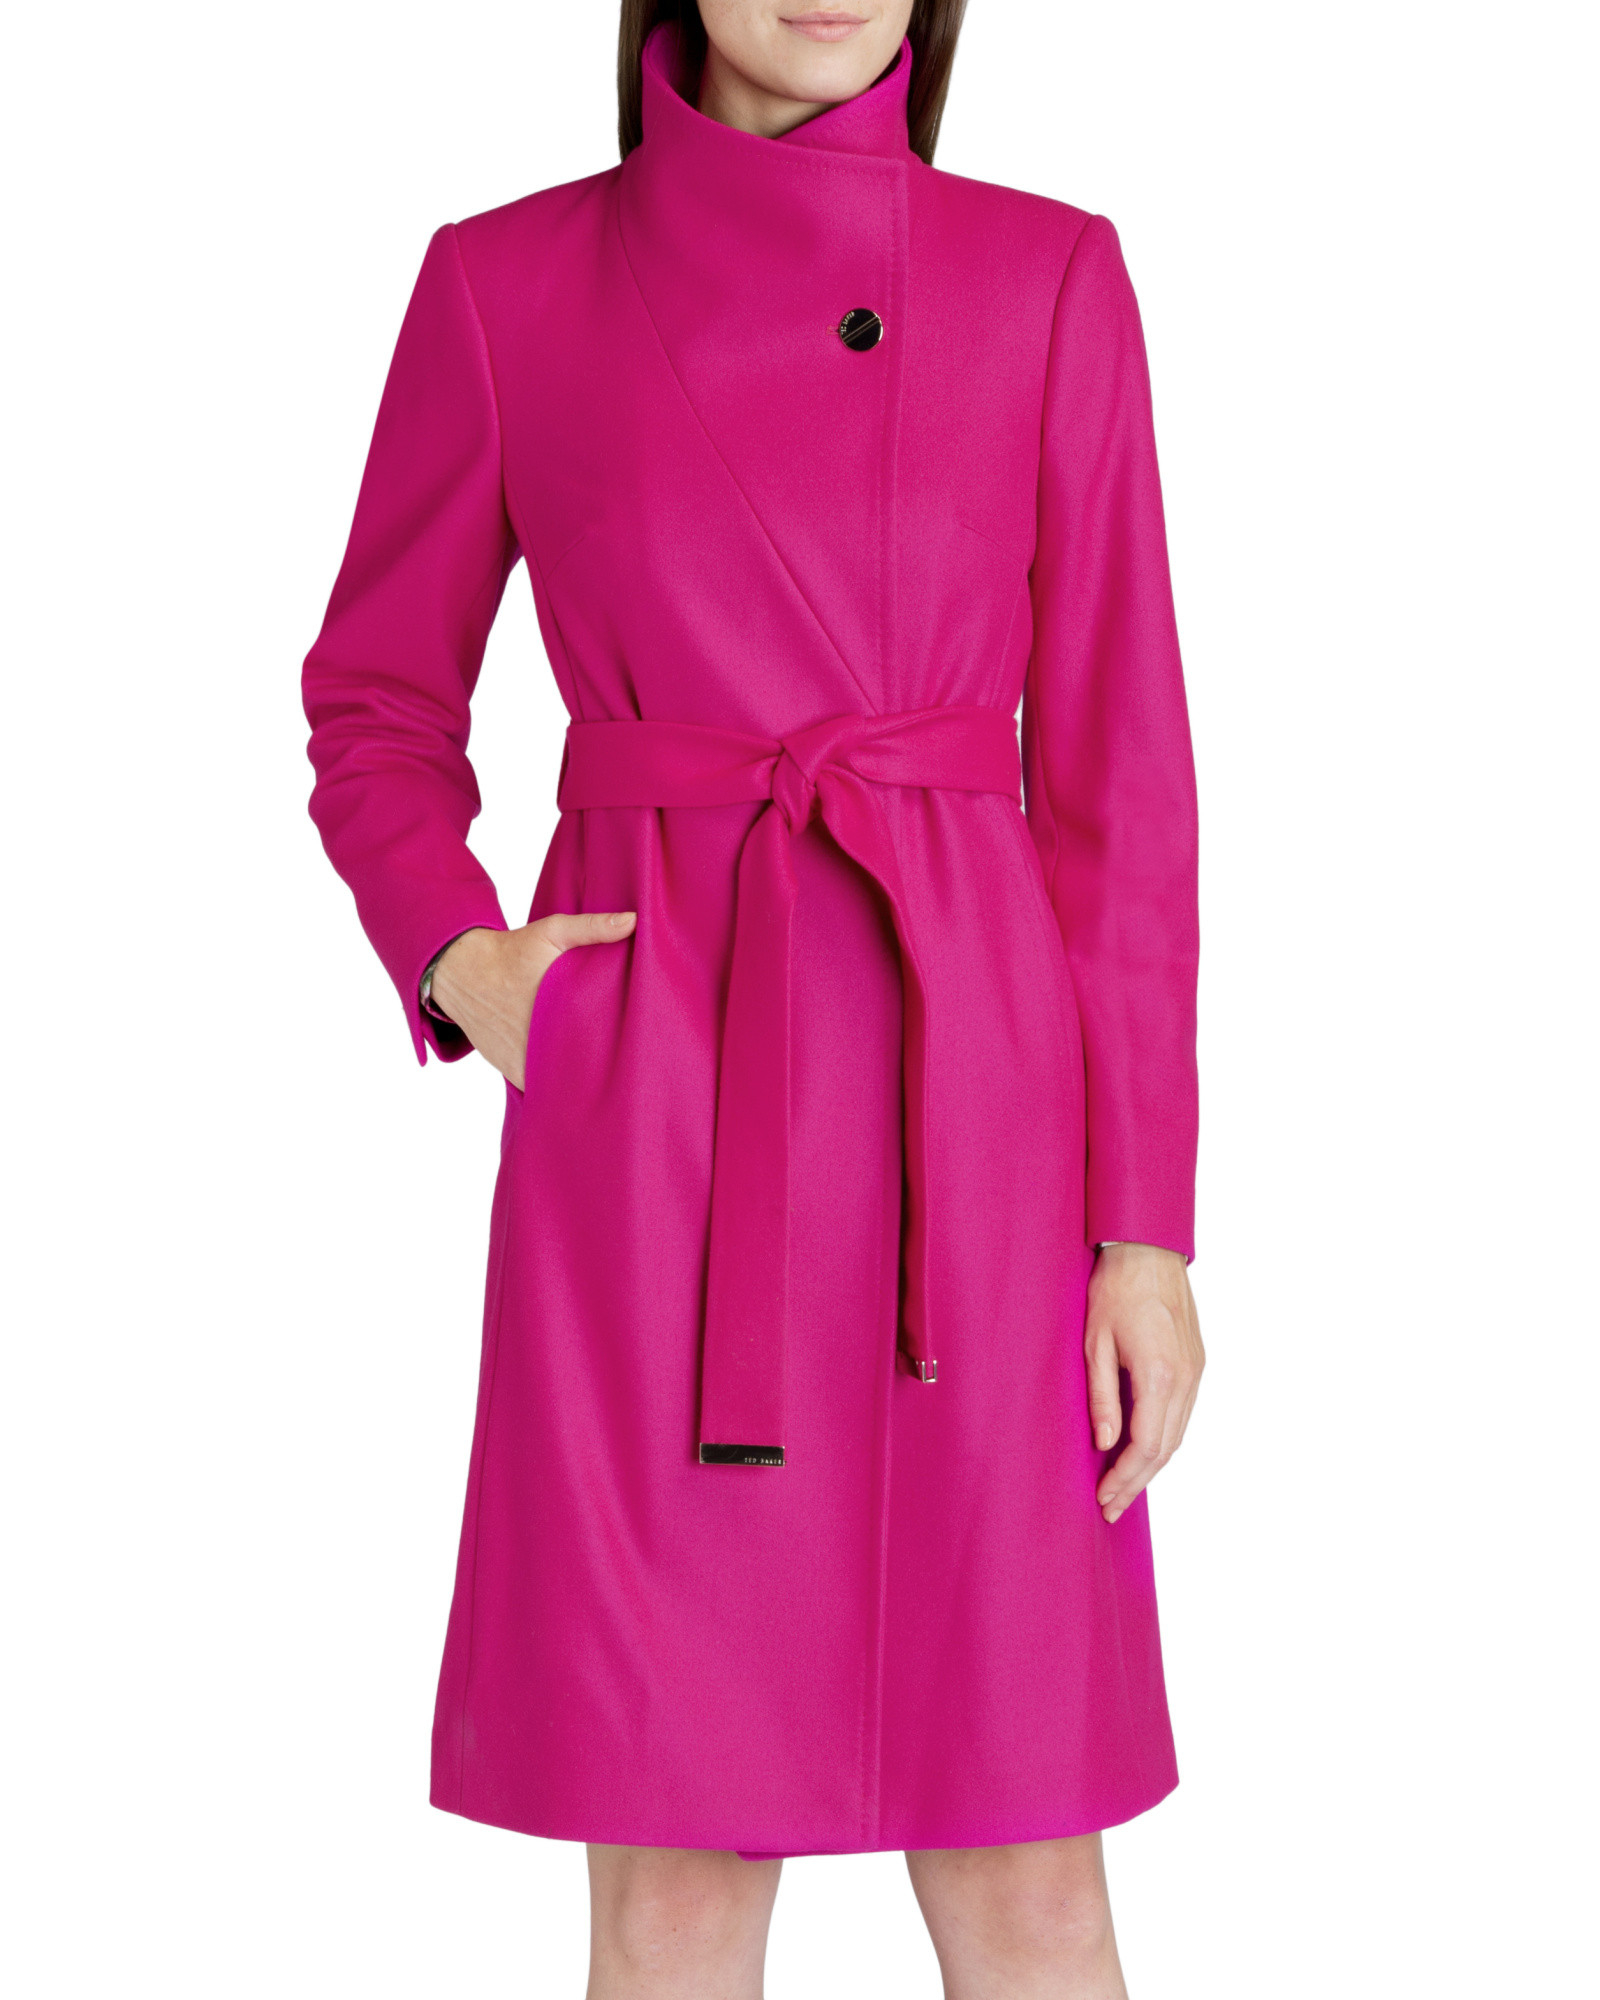 a02f310692e514 Ted Baker Belted Wrap Coat in Pink - Lyst